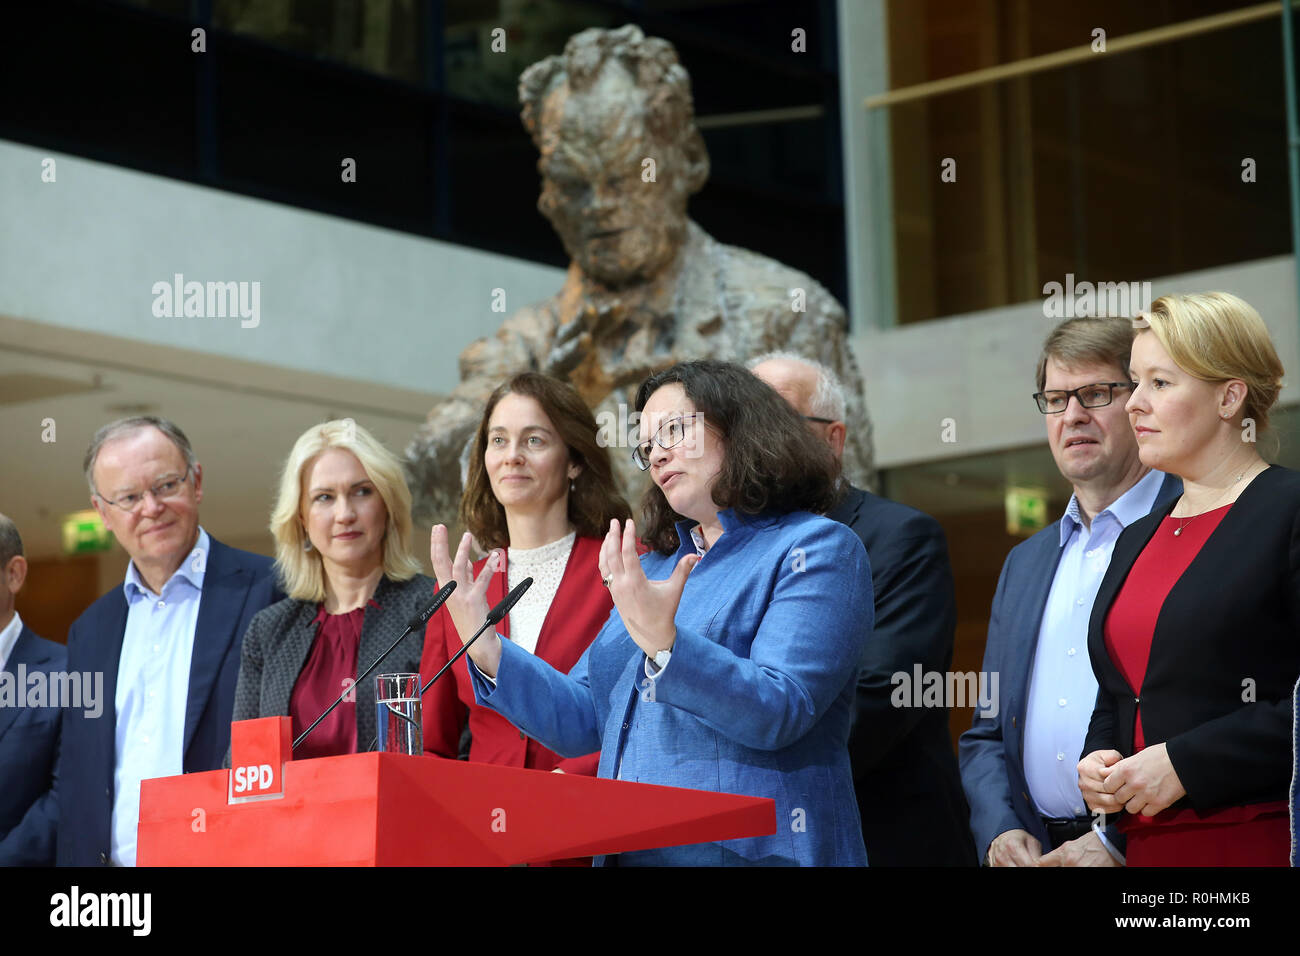 05 November 2018, Berlin: Andrea Nahles (M), chairwoman of the SPD, made a statement in the presence of the members of the executive committee after the meeting of the SPD executive committee at a press conference in the Willy Brandt House on the conclusion of the closed conference of the SPD federal leadership. L-r: L-r: Stephan Weil, Minister President of Lower Saxony, Manuela Schwesig, Minister President of Mecklenburg-Western Pomerania, Katarina Barley, Federal Minister of Justice, Andrea Nahles, Chairwoman, Ralf Stegner, Deputy Chairman, and Franziska Giffey, Federal Minister for Family A - Stock Image